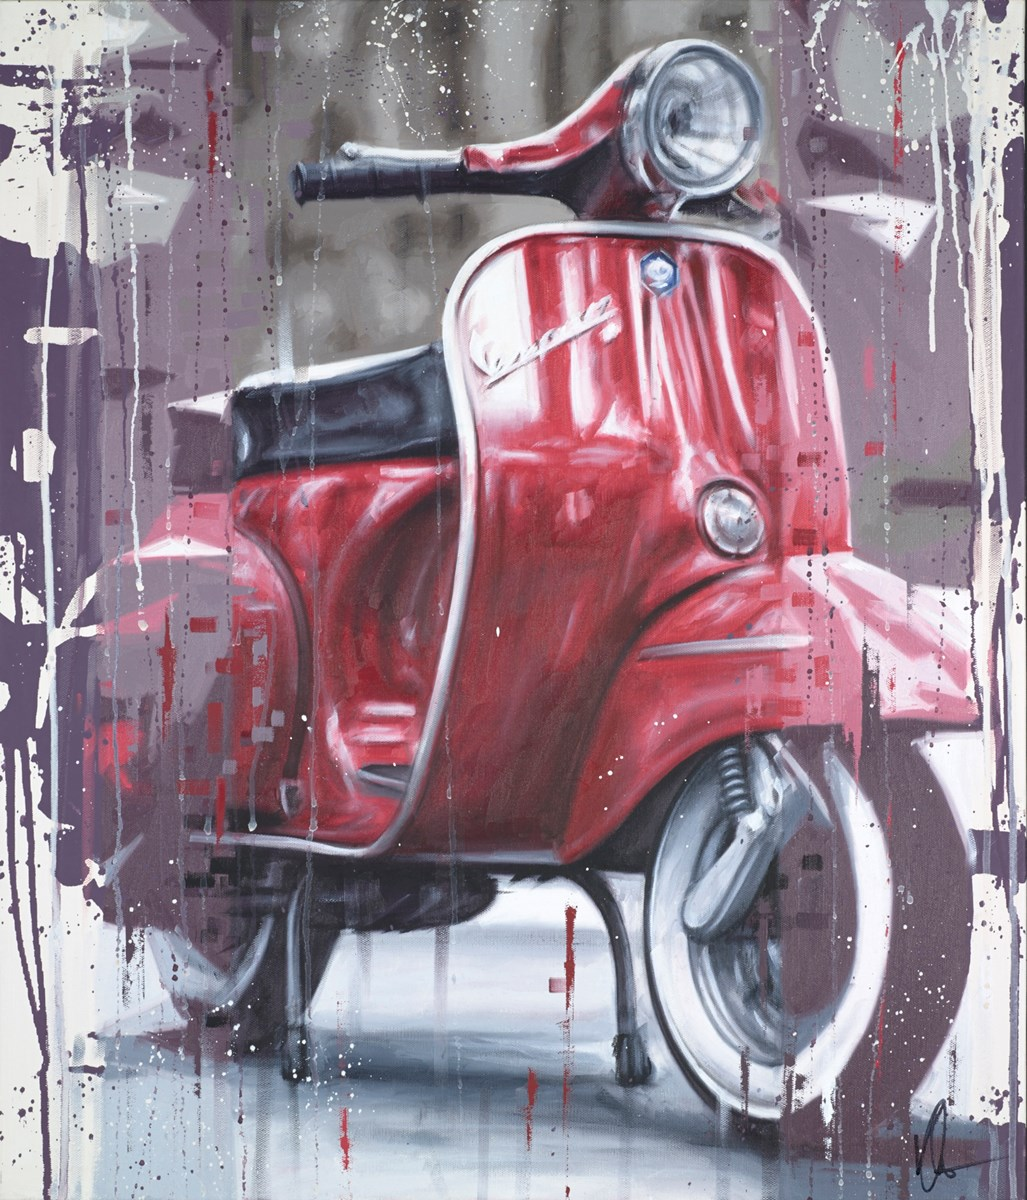 Vespa II by kris hardy -  sized 24x28 inches. Available from Whitewall Galleries